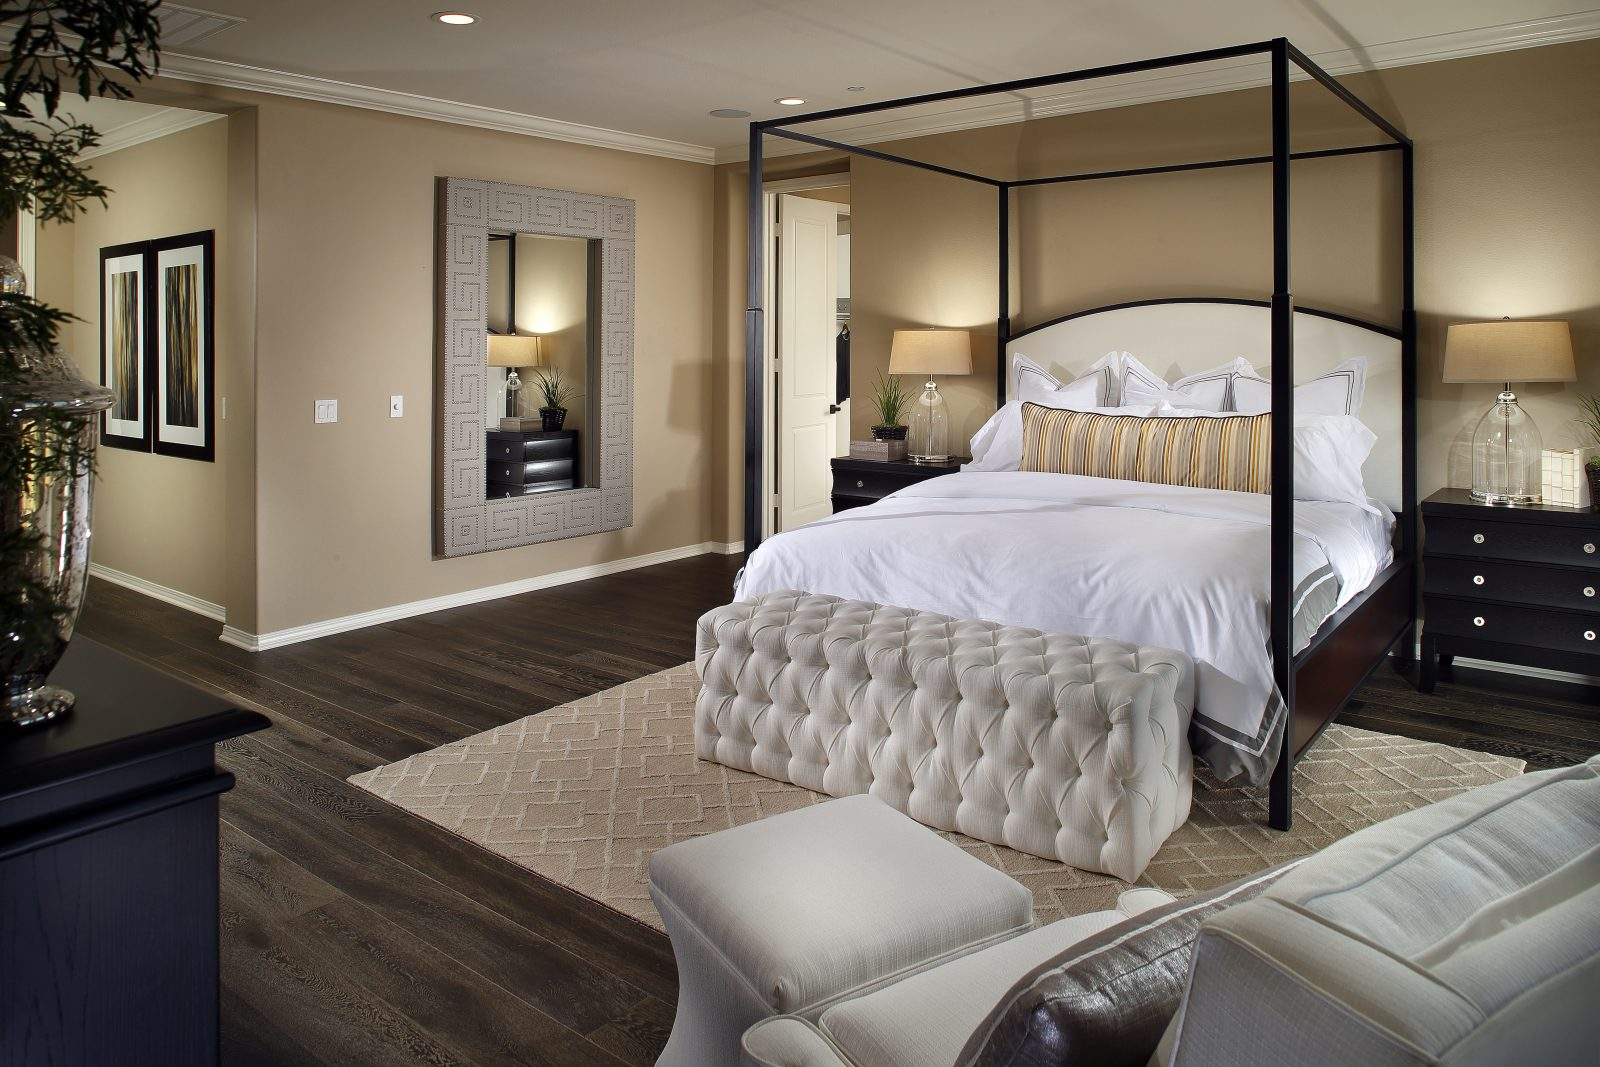 Master Bedroom in Santa Clarita Homes for Sale